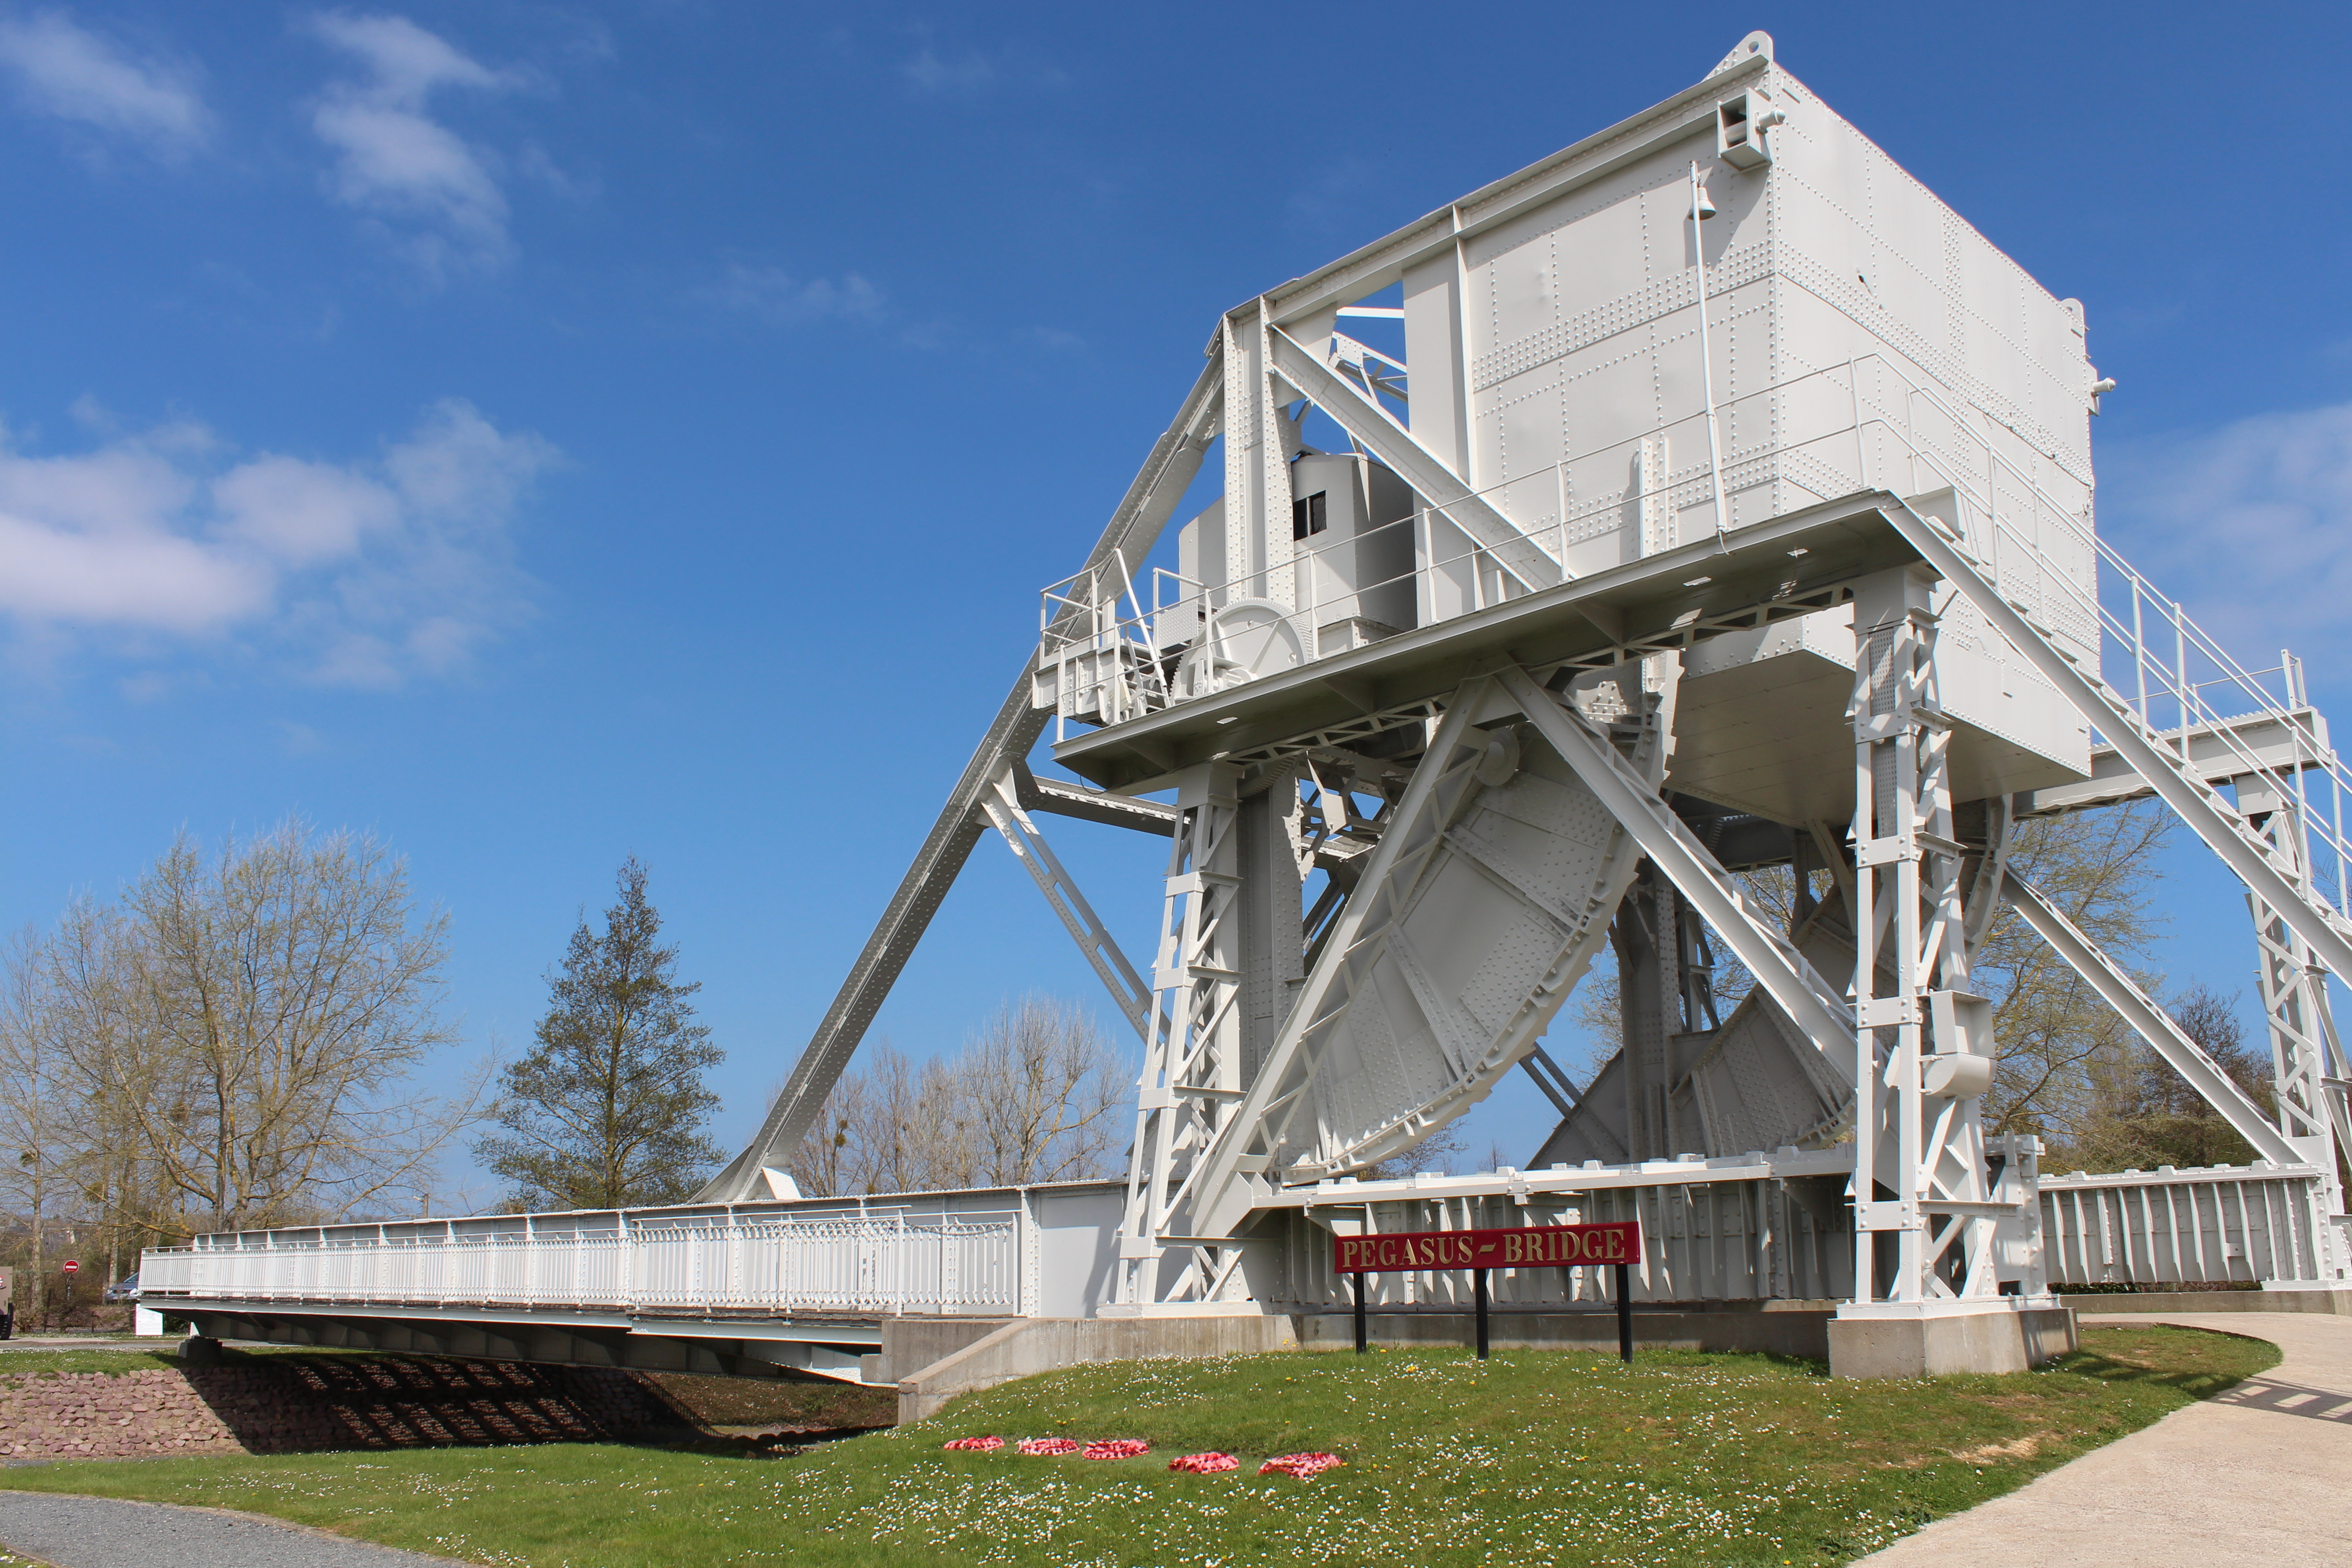 Pegasus bridge is a metal construction painted white and at one end there is an industrial box like building perched about 10 meters above the ground.